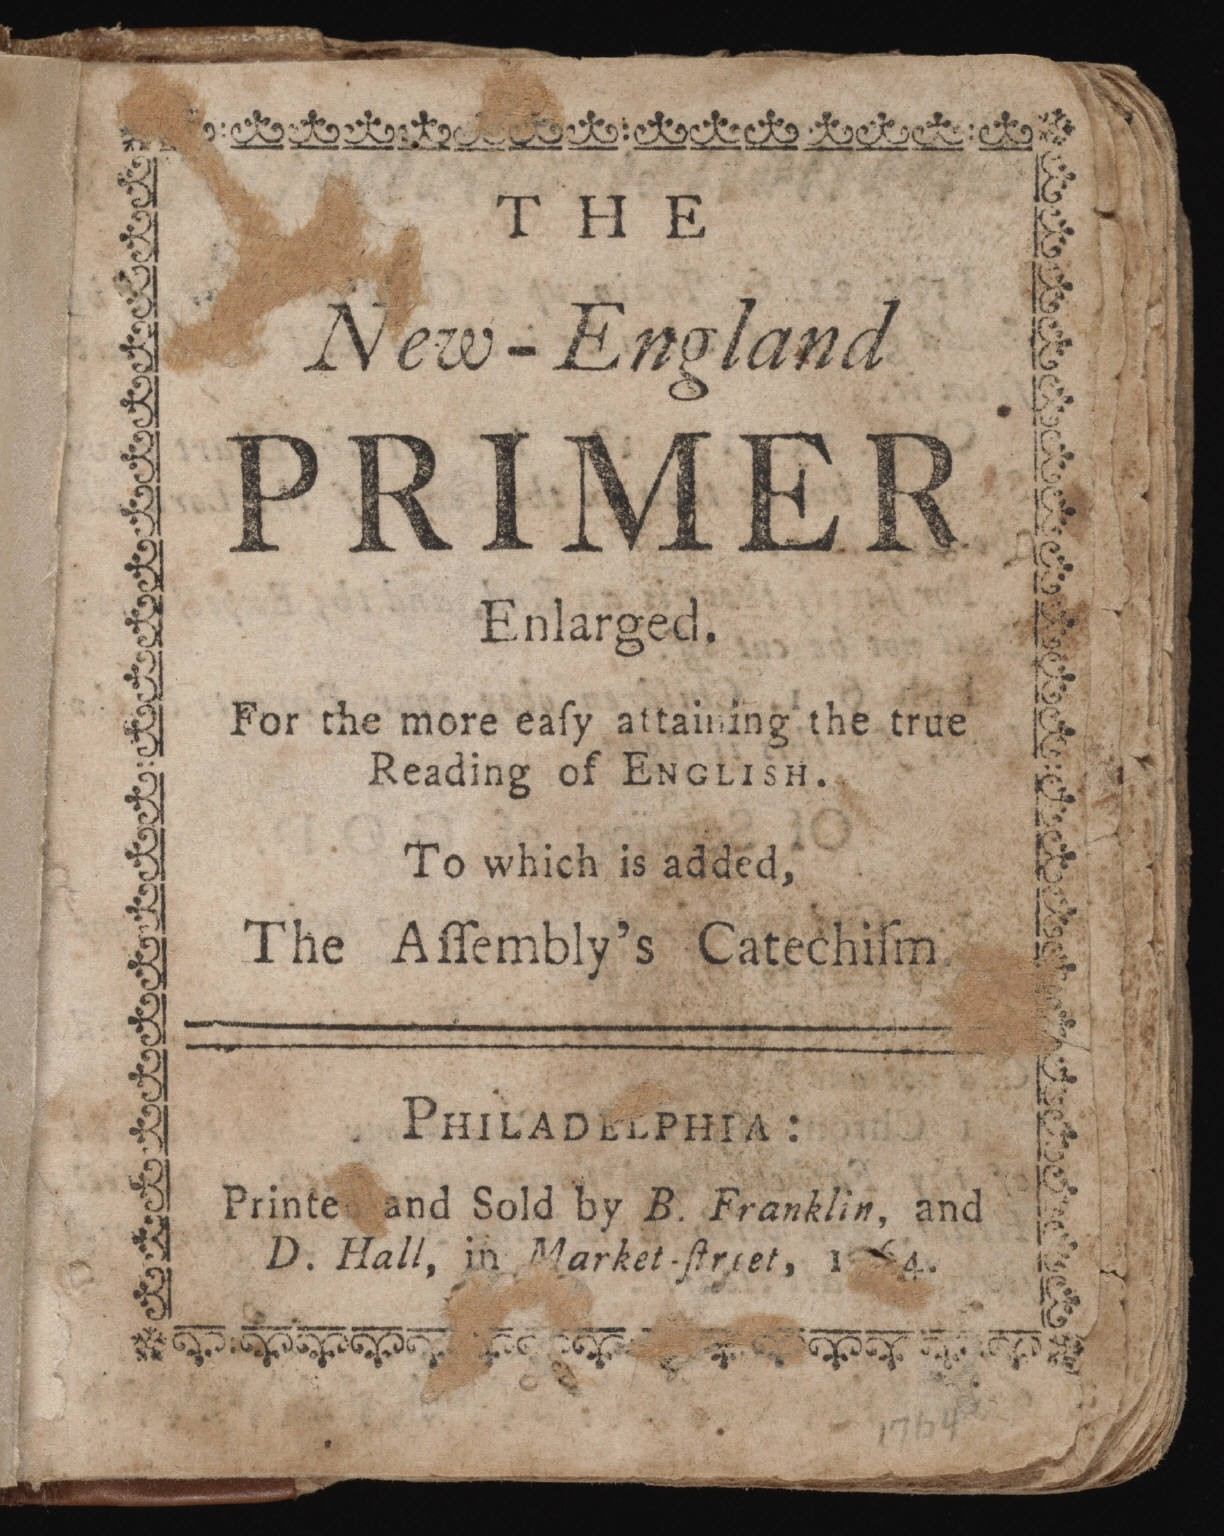 The Role Of The Bible In Early American Education